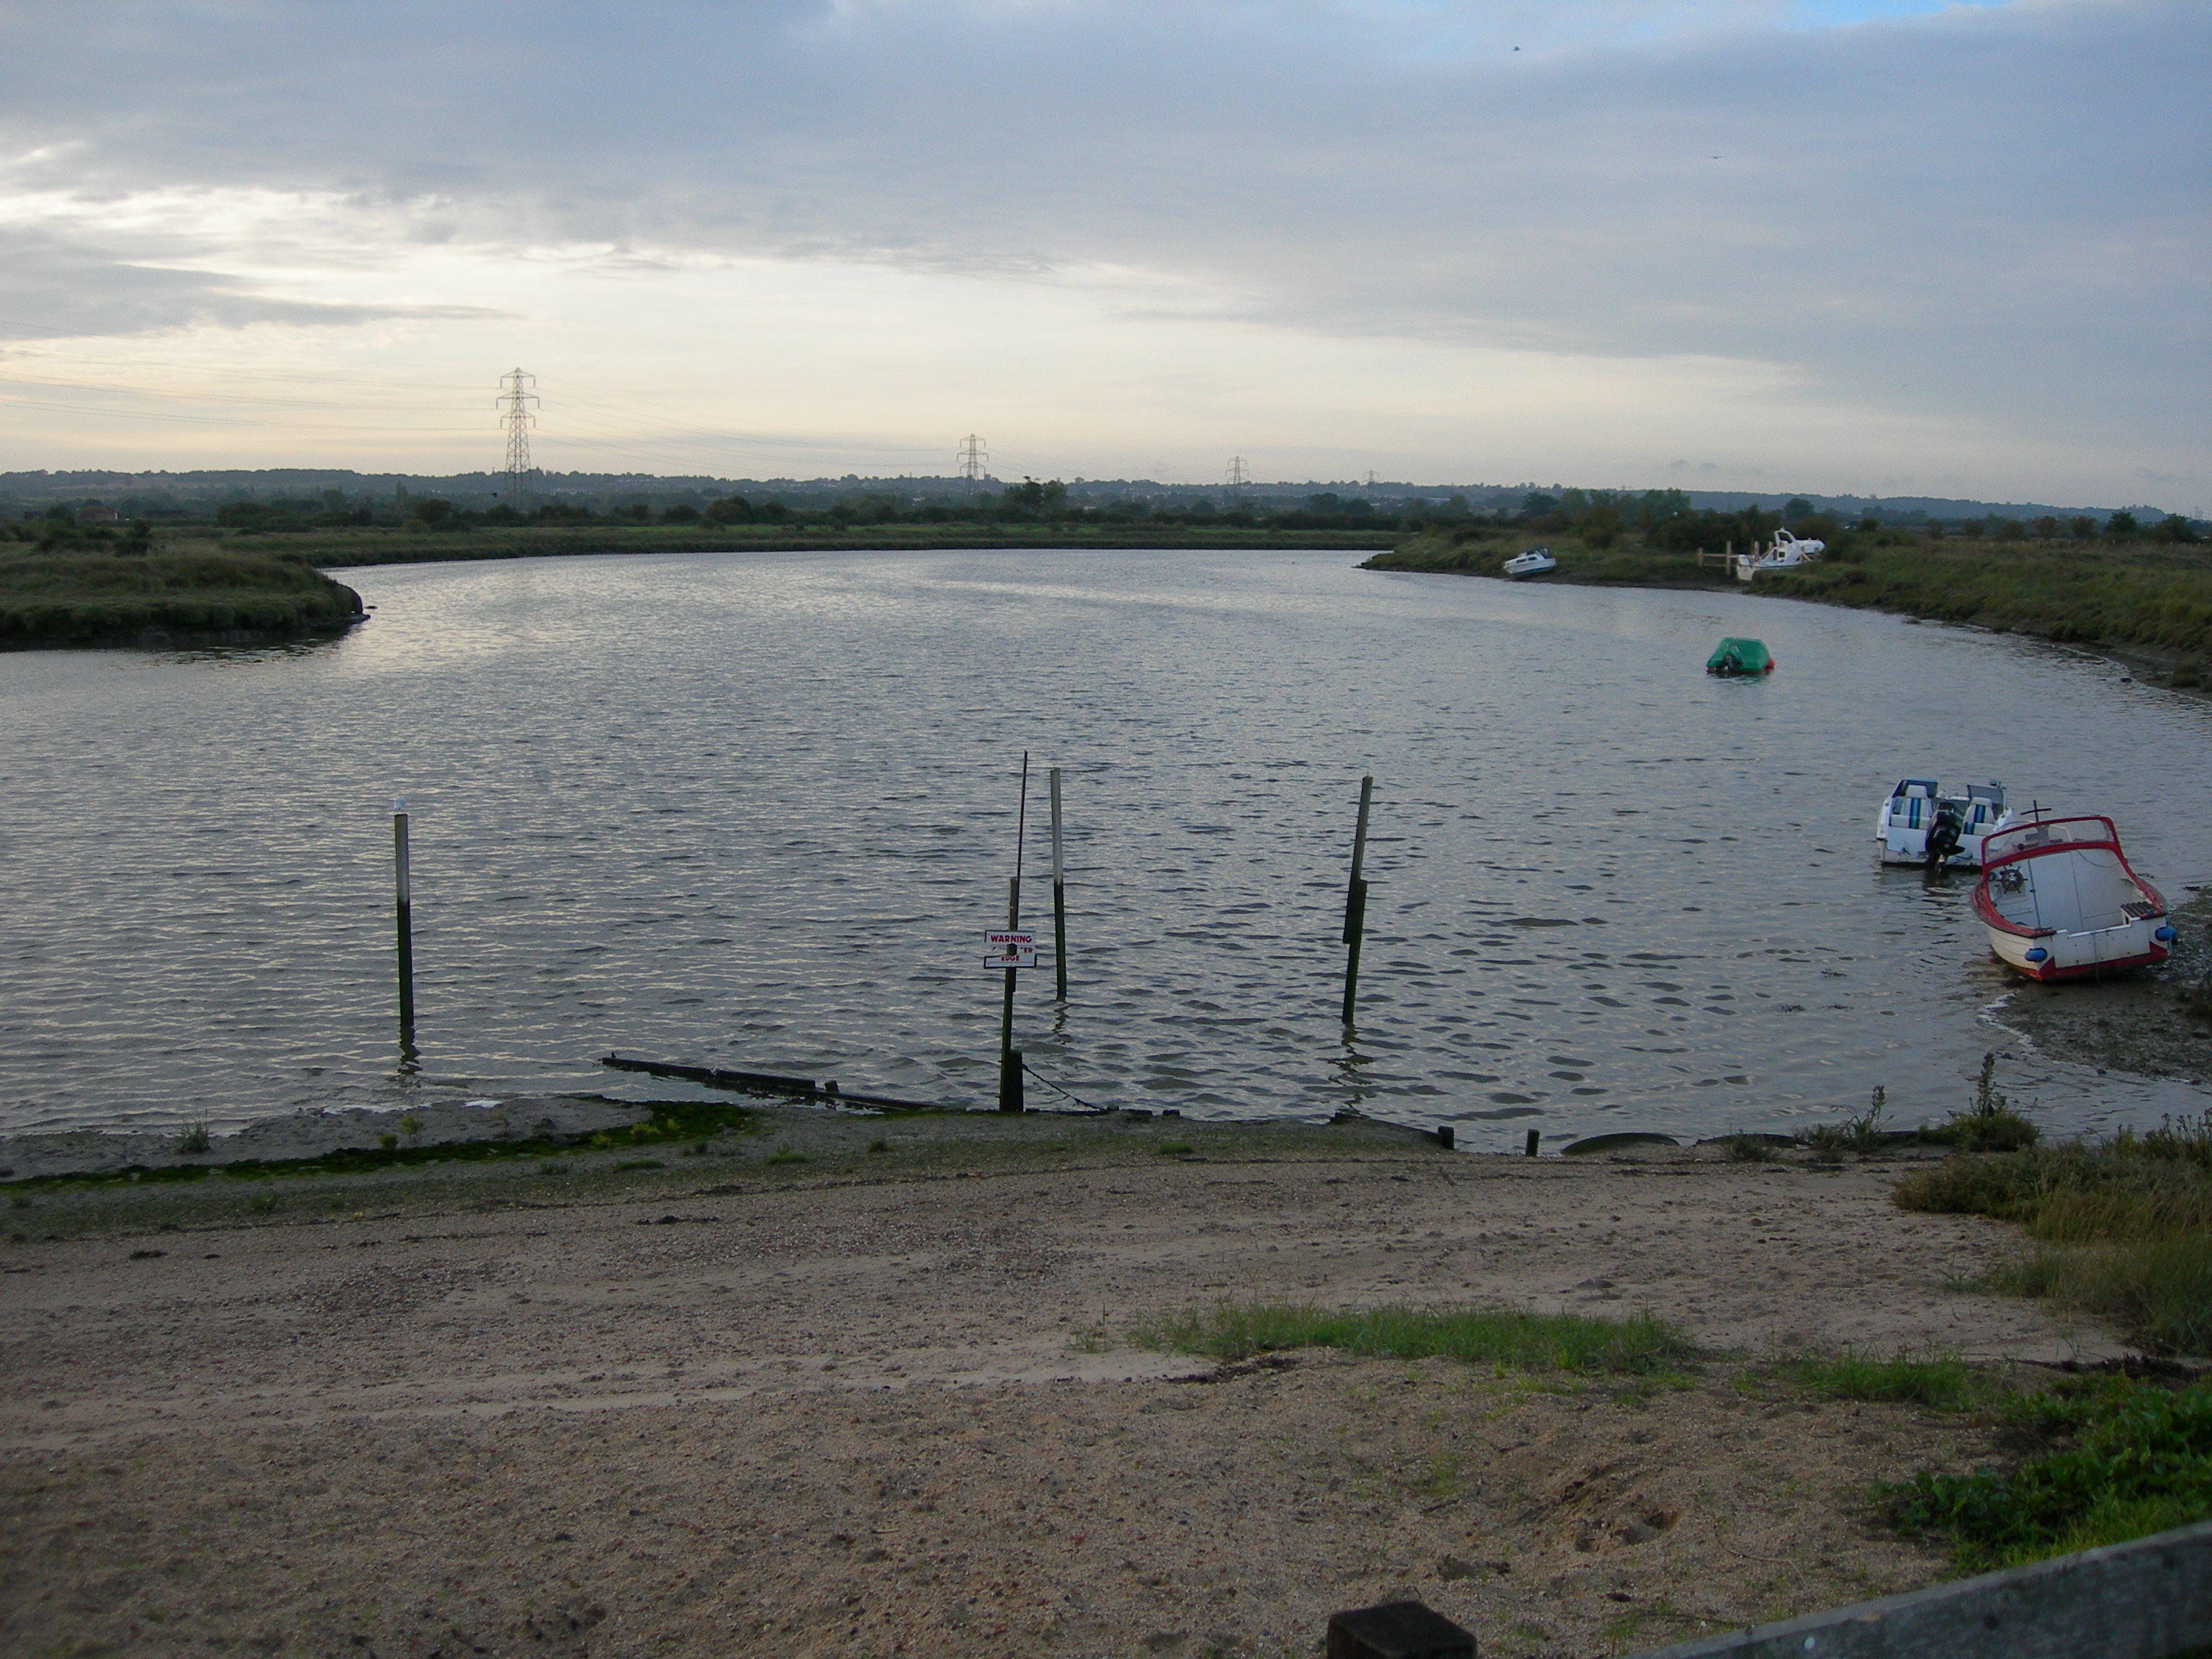 File:River Crouch - Hayes Farm Slipway - panoramio jpg